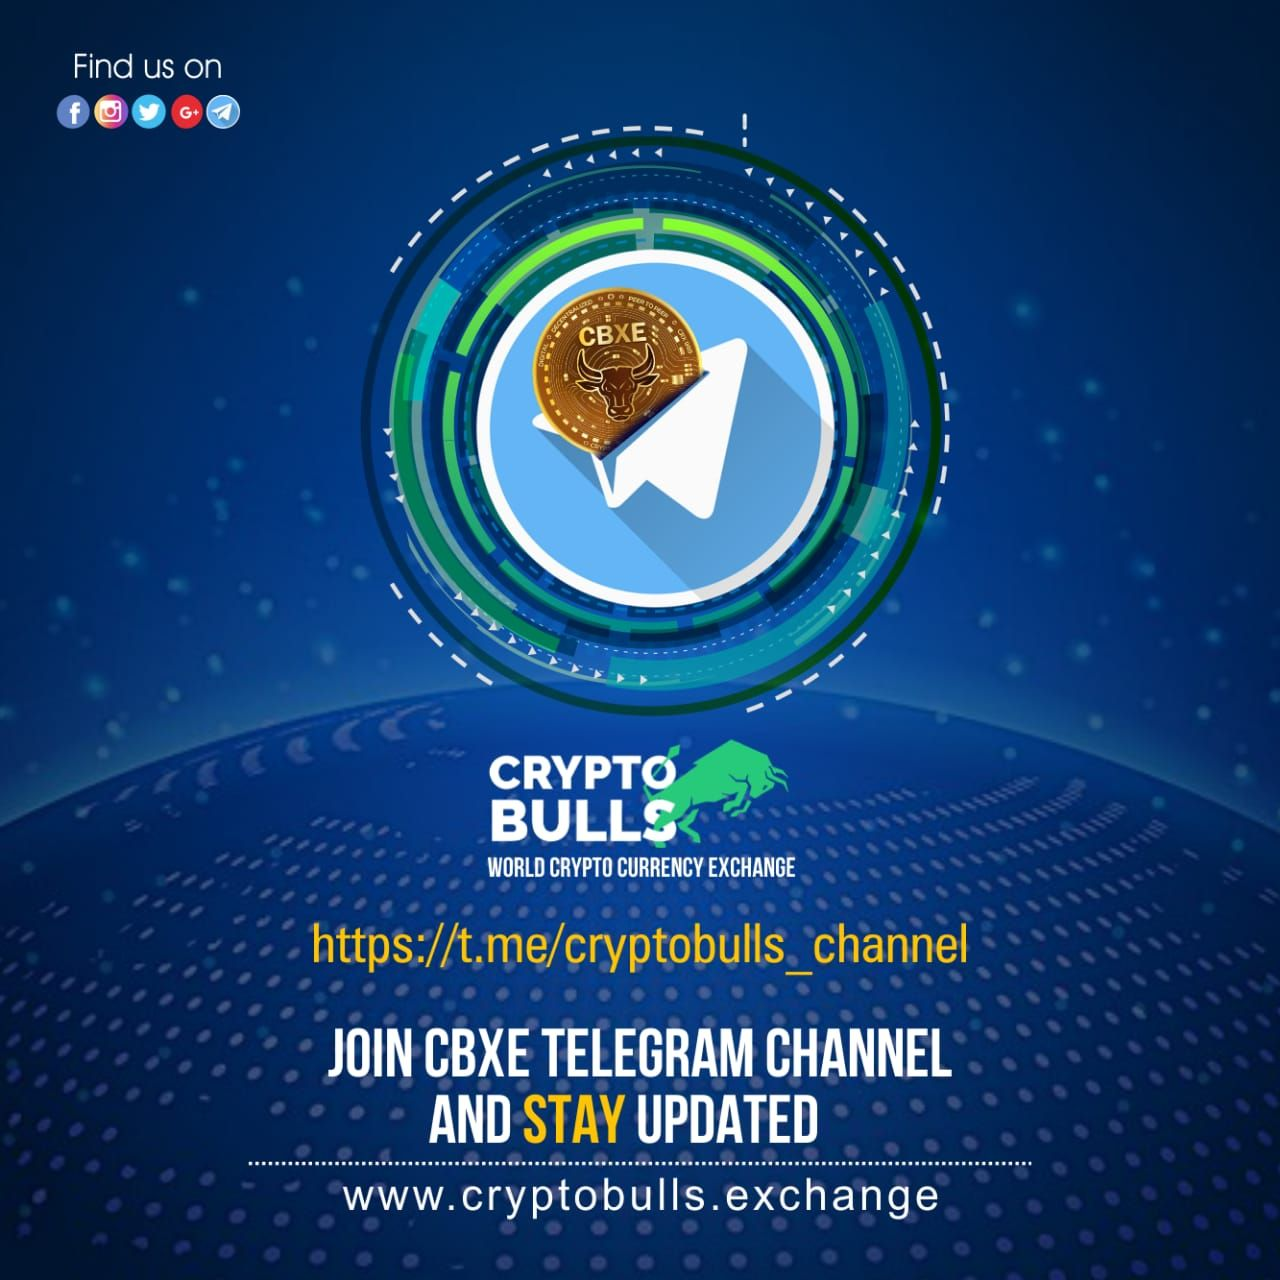 Join #CBXE #Telegram Channel and Stay Updated @cryptobullsexchange